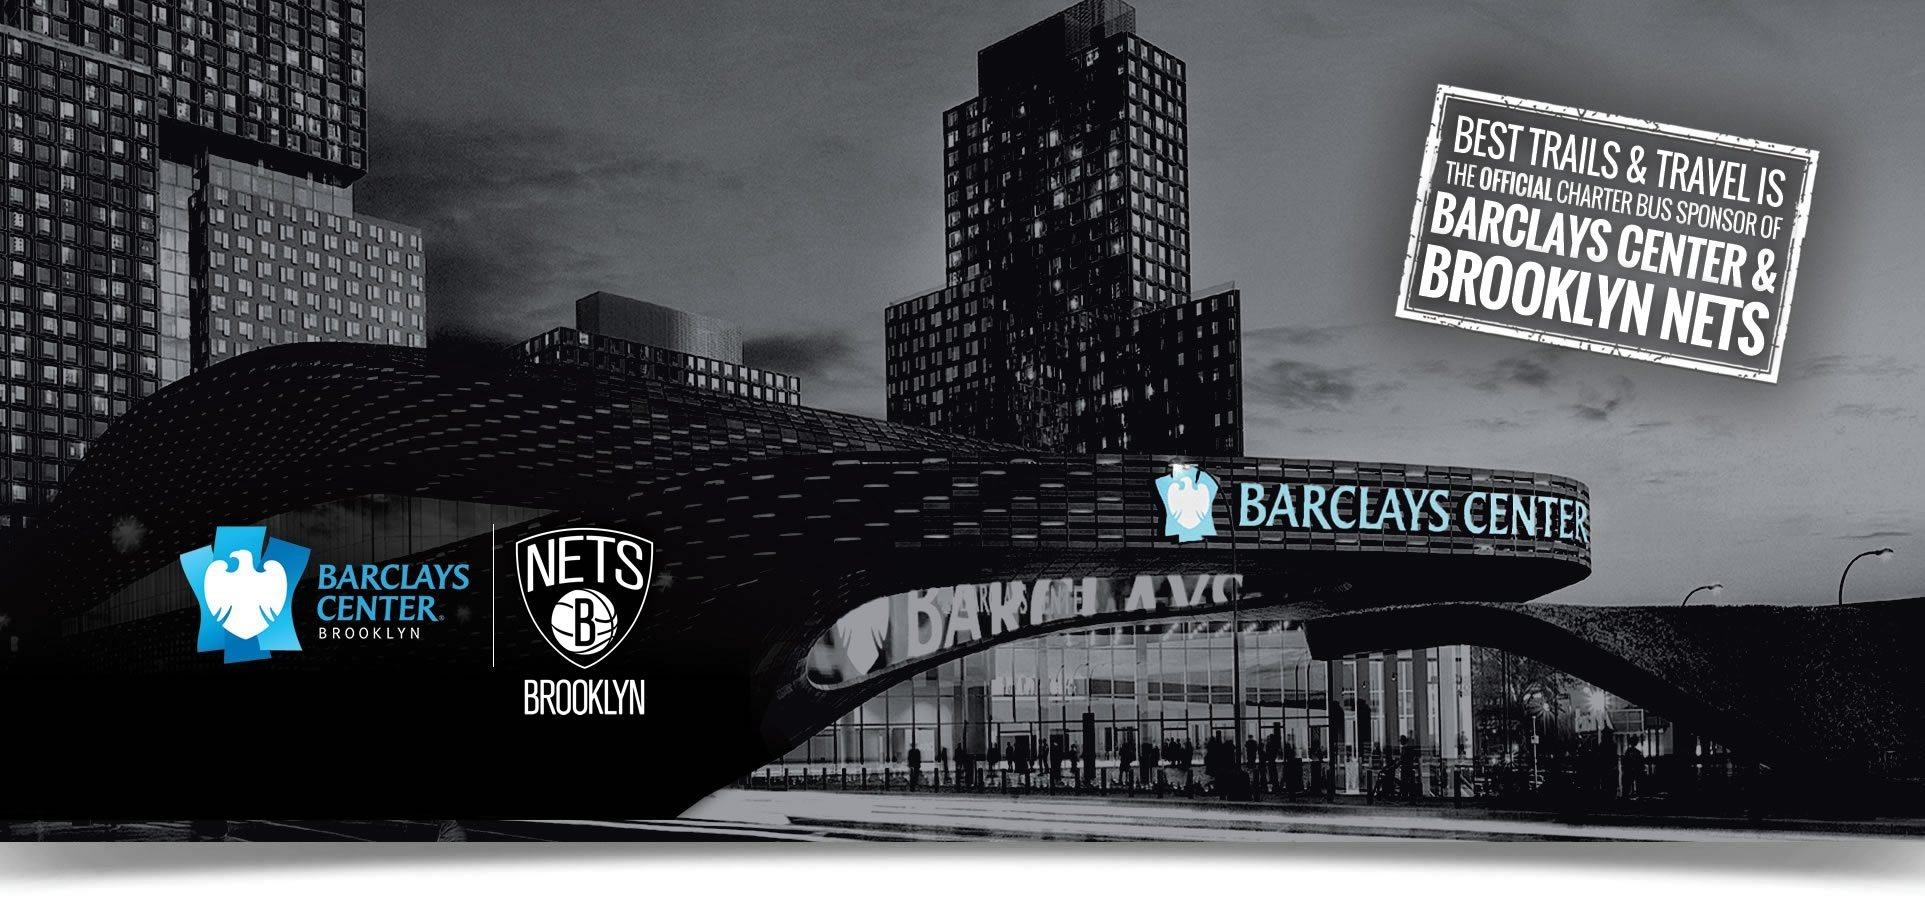 Best Trails & Travel Gets You to All the Brooklyn Nets Action at the Barclays Center Brooklyn